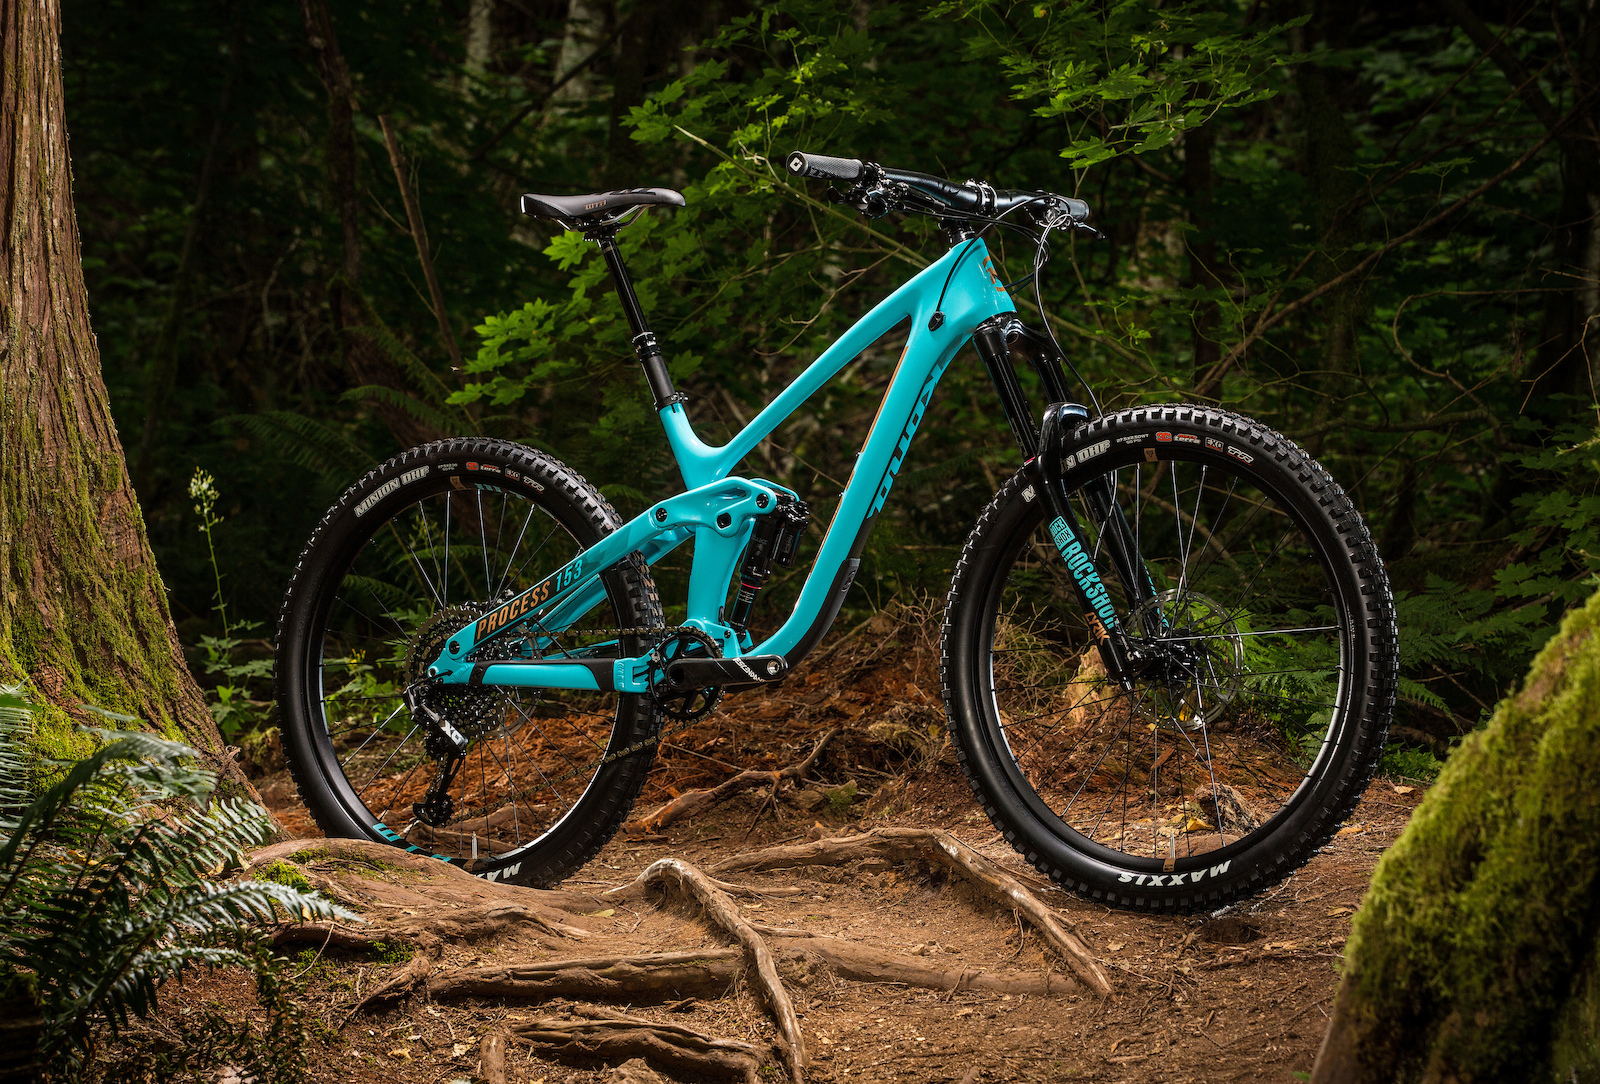 94f194be3e2 Everything You Need to Know About Kona's New Process Bikes - Pinkbike